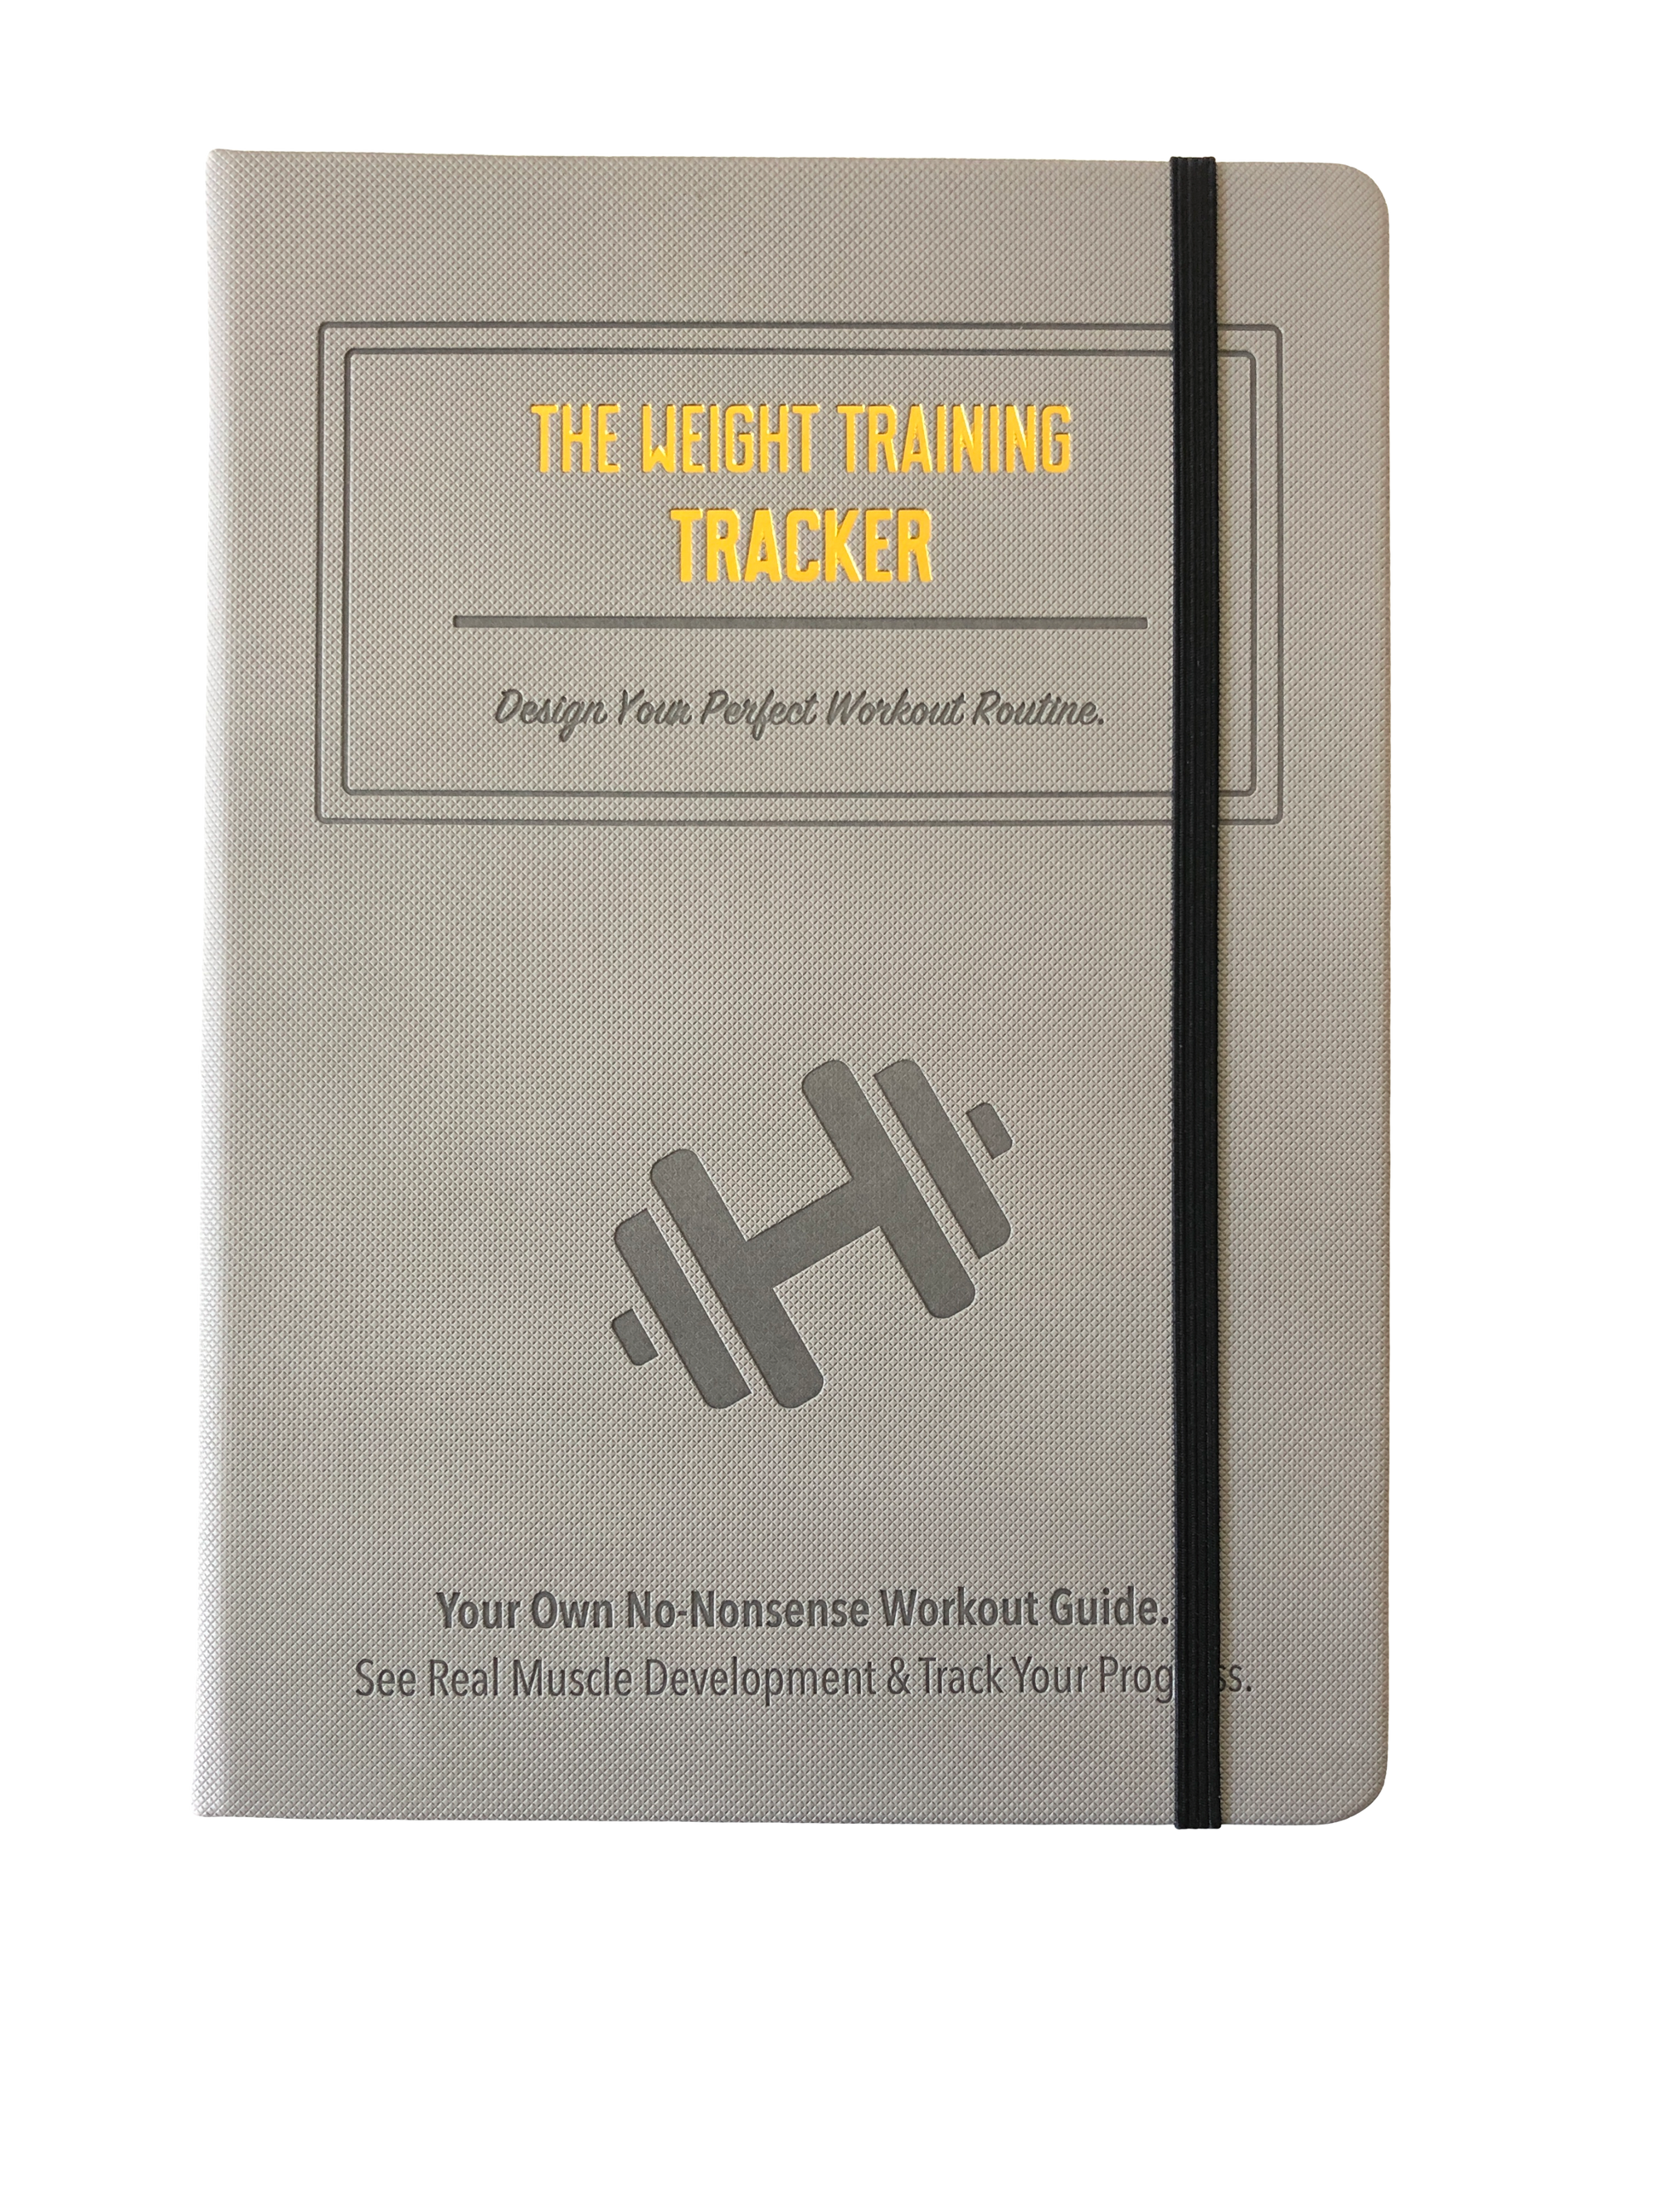 The Weight Training Tracker